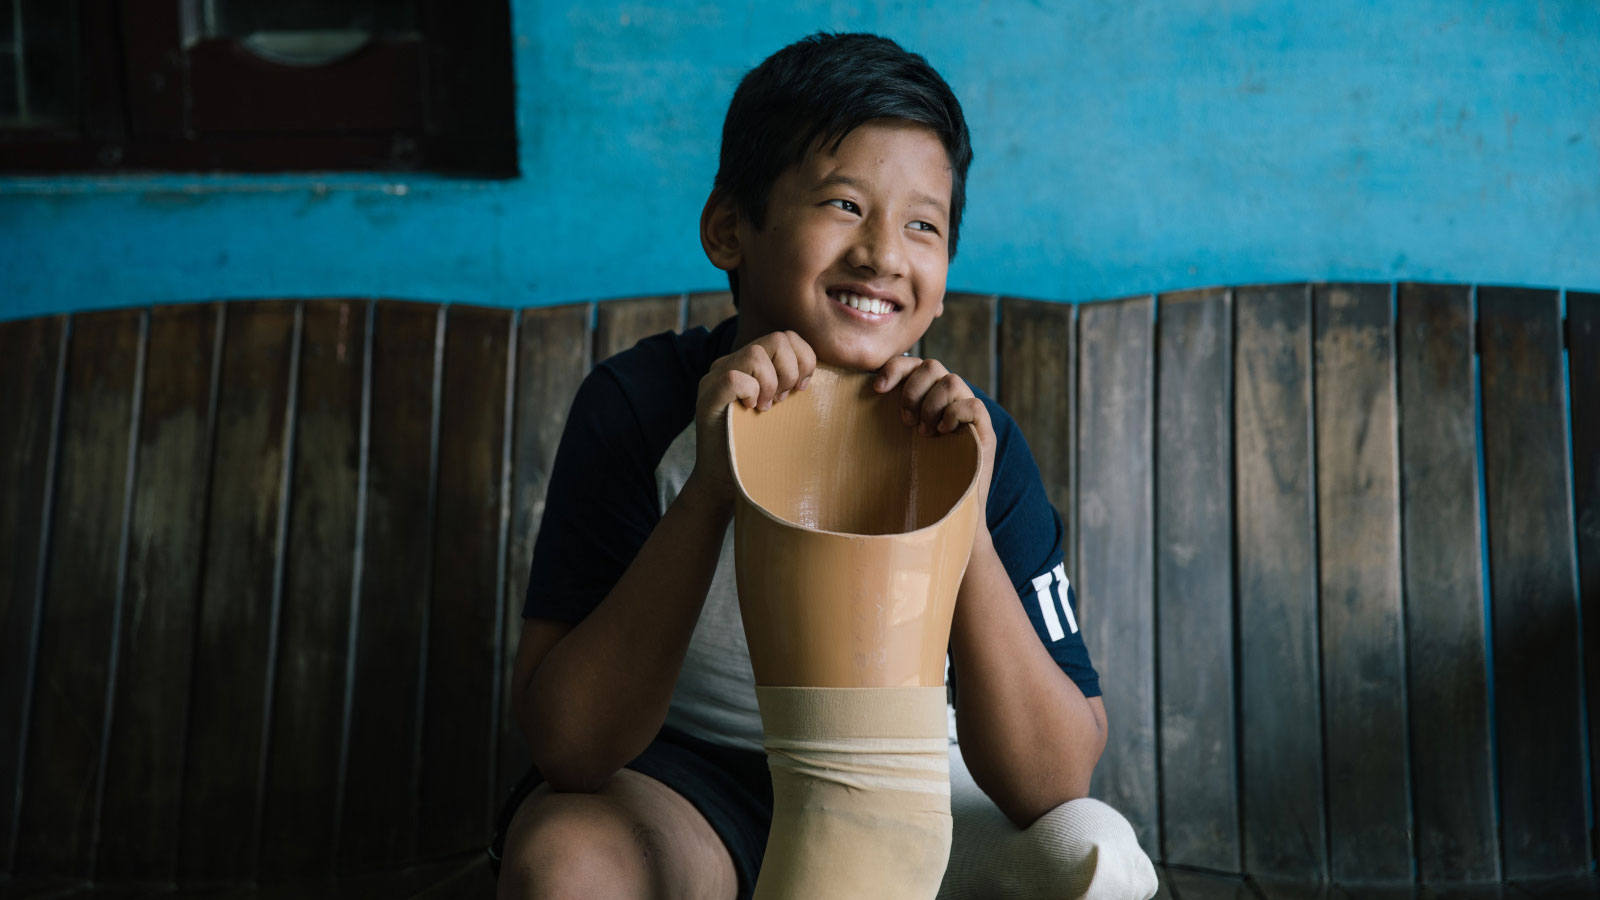 Nepal | Nishan gains strength to play his favorite sport: badminton!